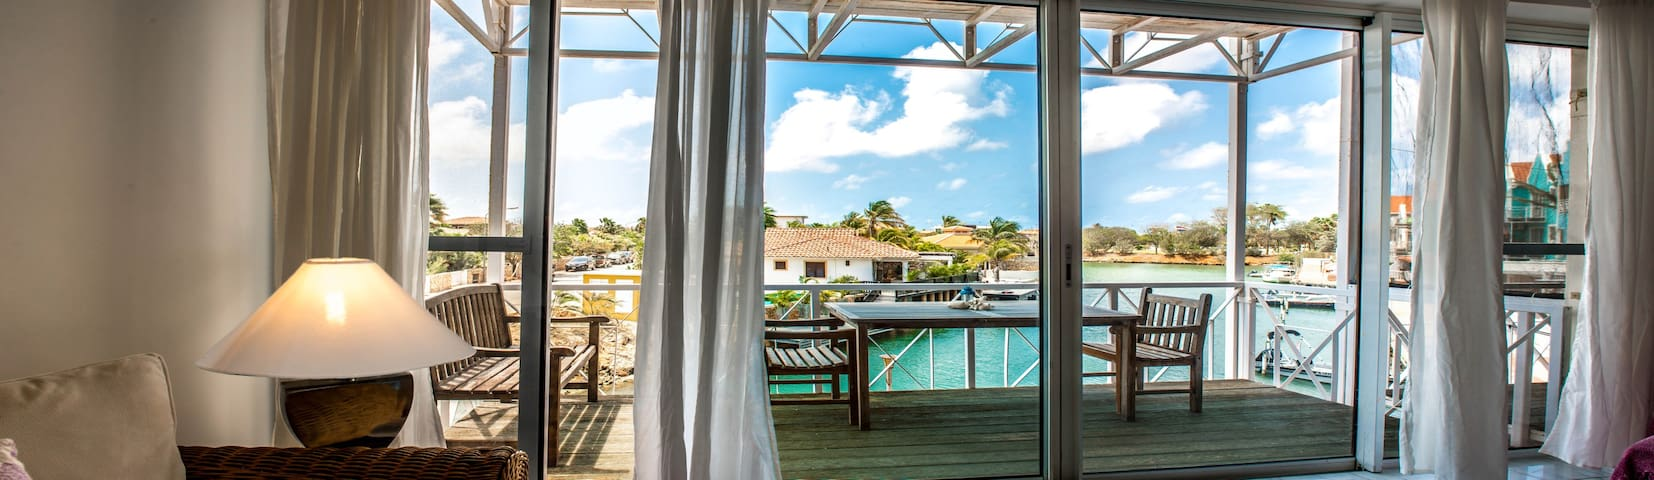 Intimate setting ideal for a couple. Your apartment nestled between two resorts.